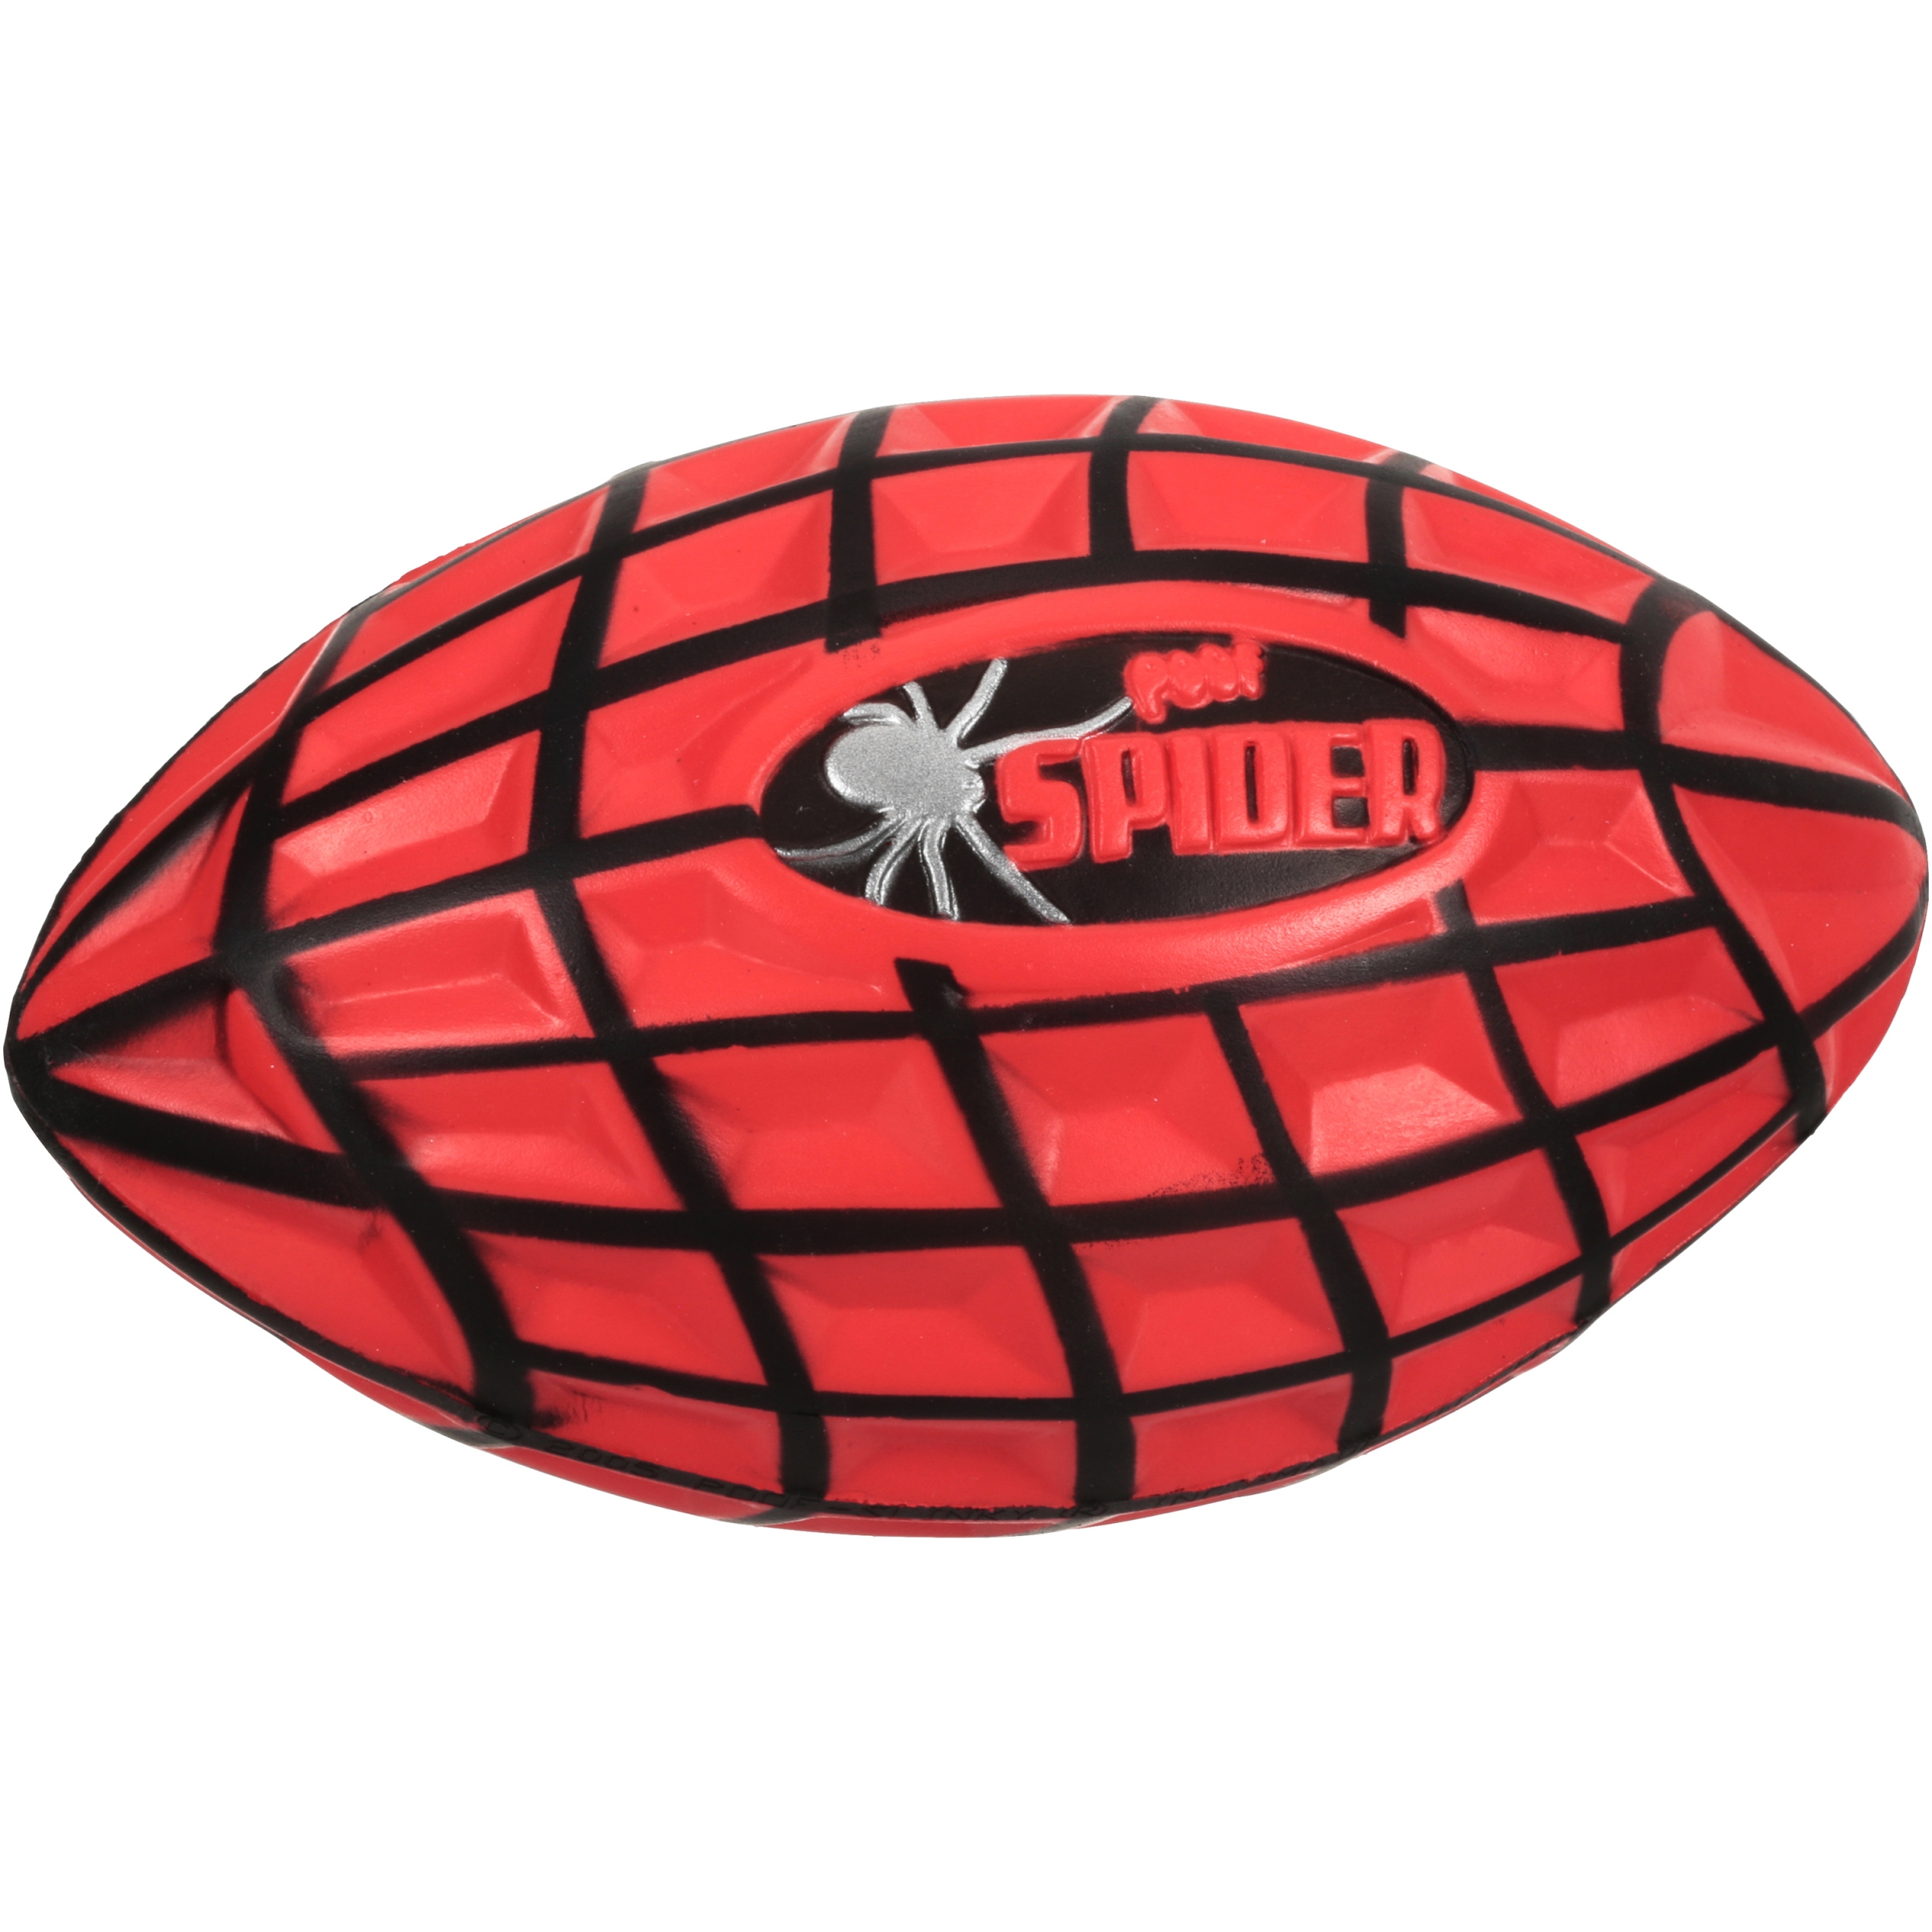 POOF Spider Football in Box